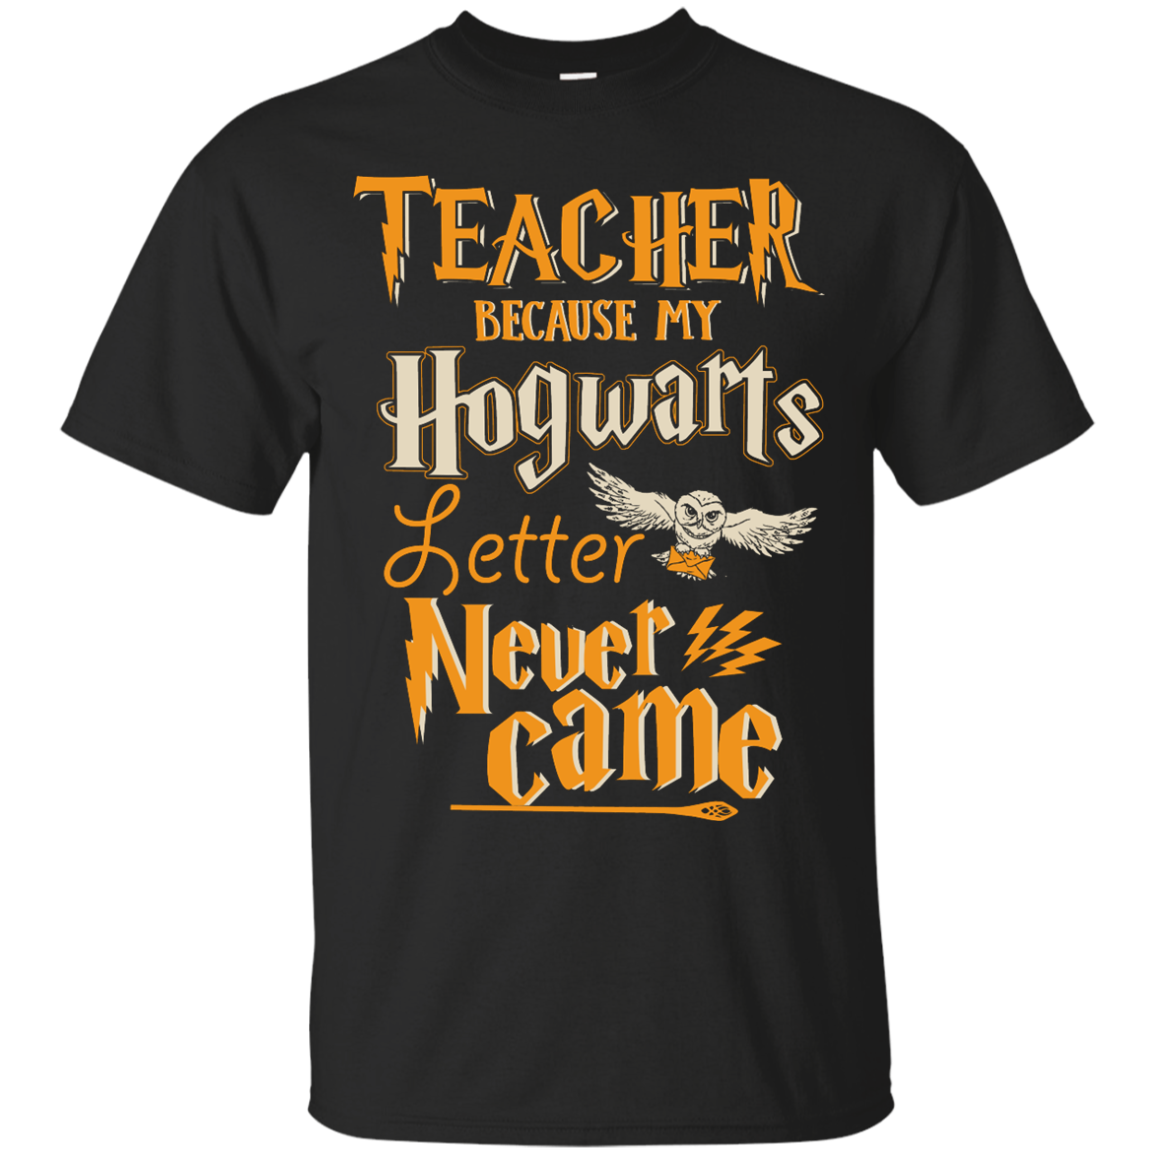 image 585px Teacher because my Hogwarts letter never came t shirts, hoodies